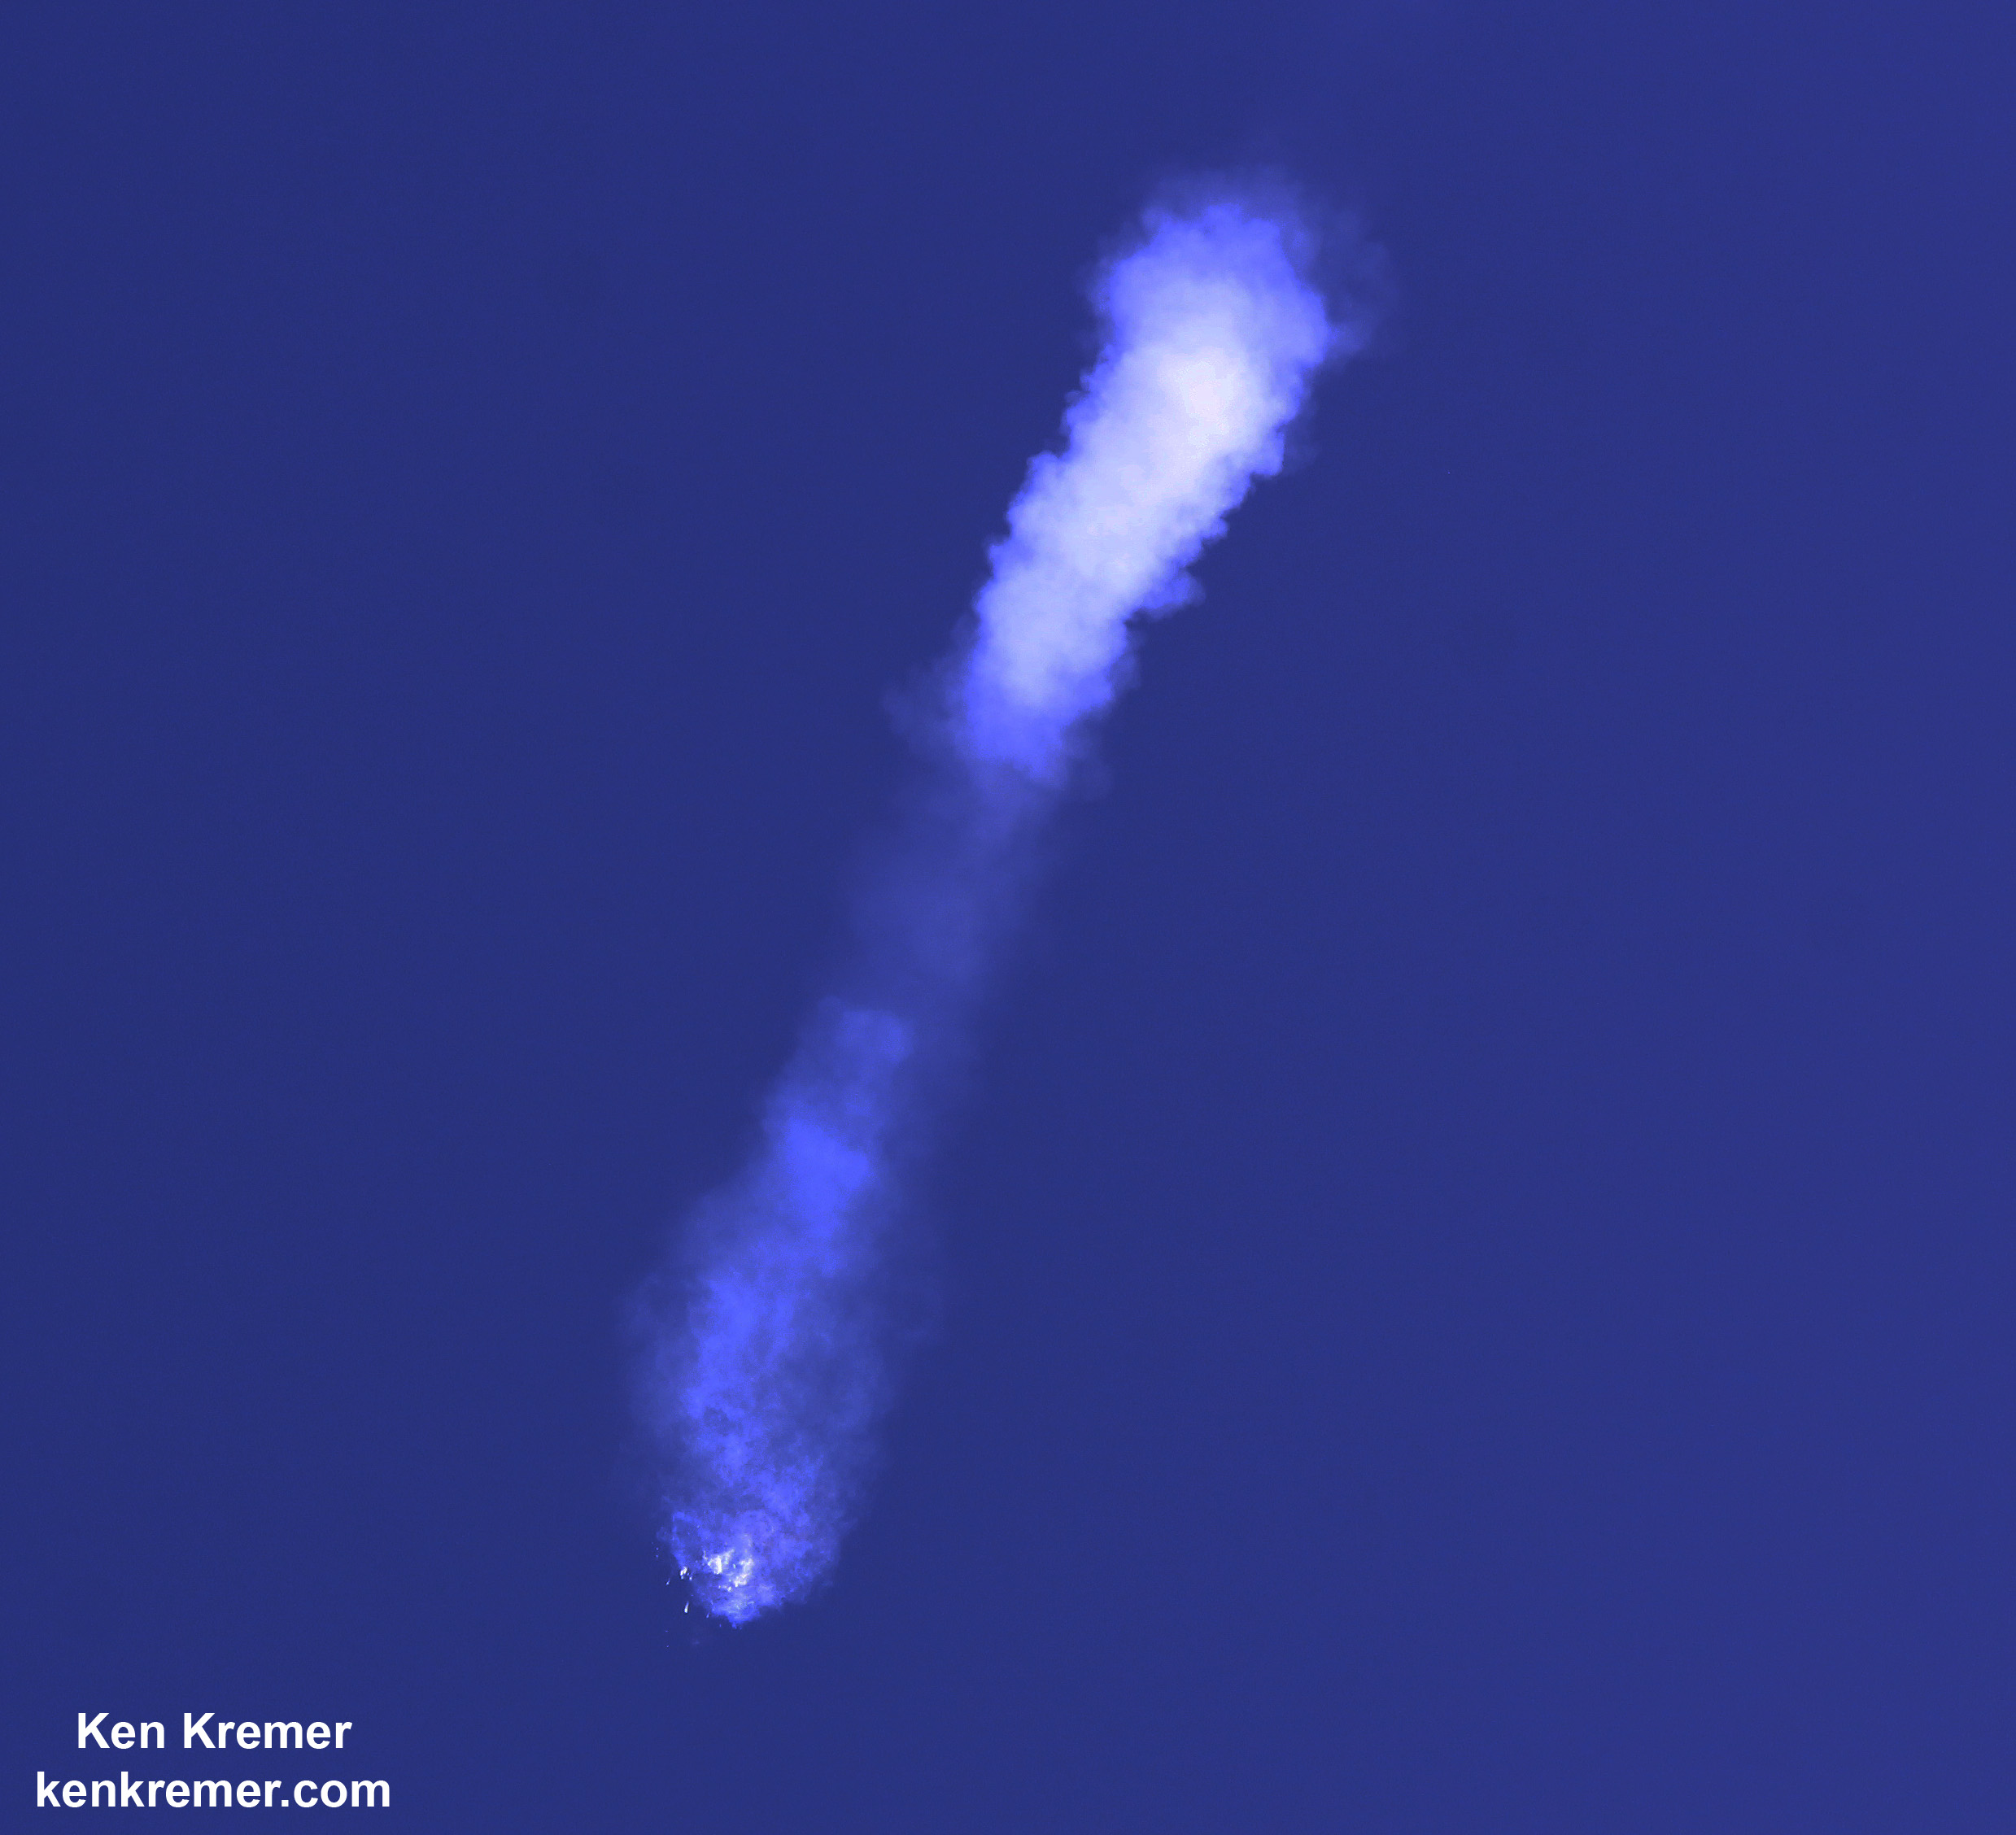 Cause of SpaceX Falcon 9 Rocket Failure Unknown; Launch Explosion Photos